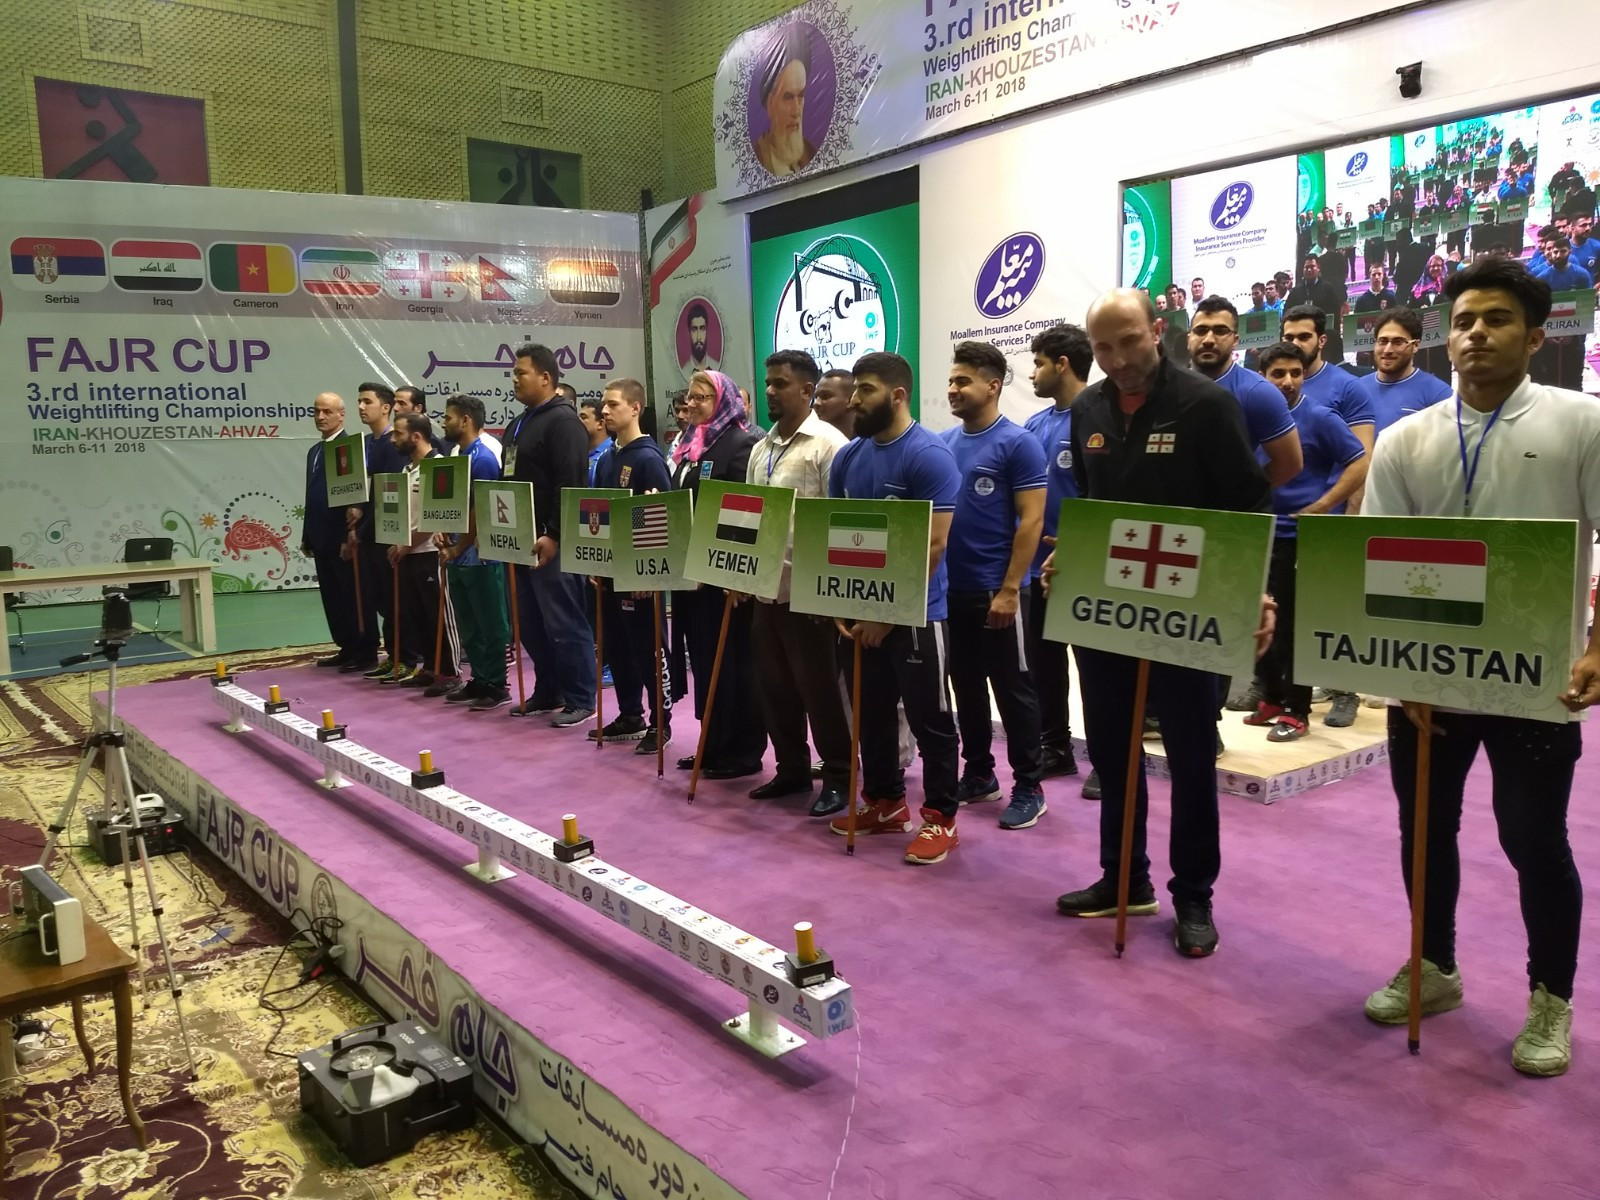 Iran National Olympic Committee express interest in Weightlifting World Championships